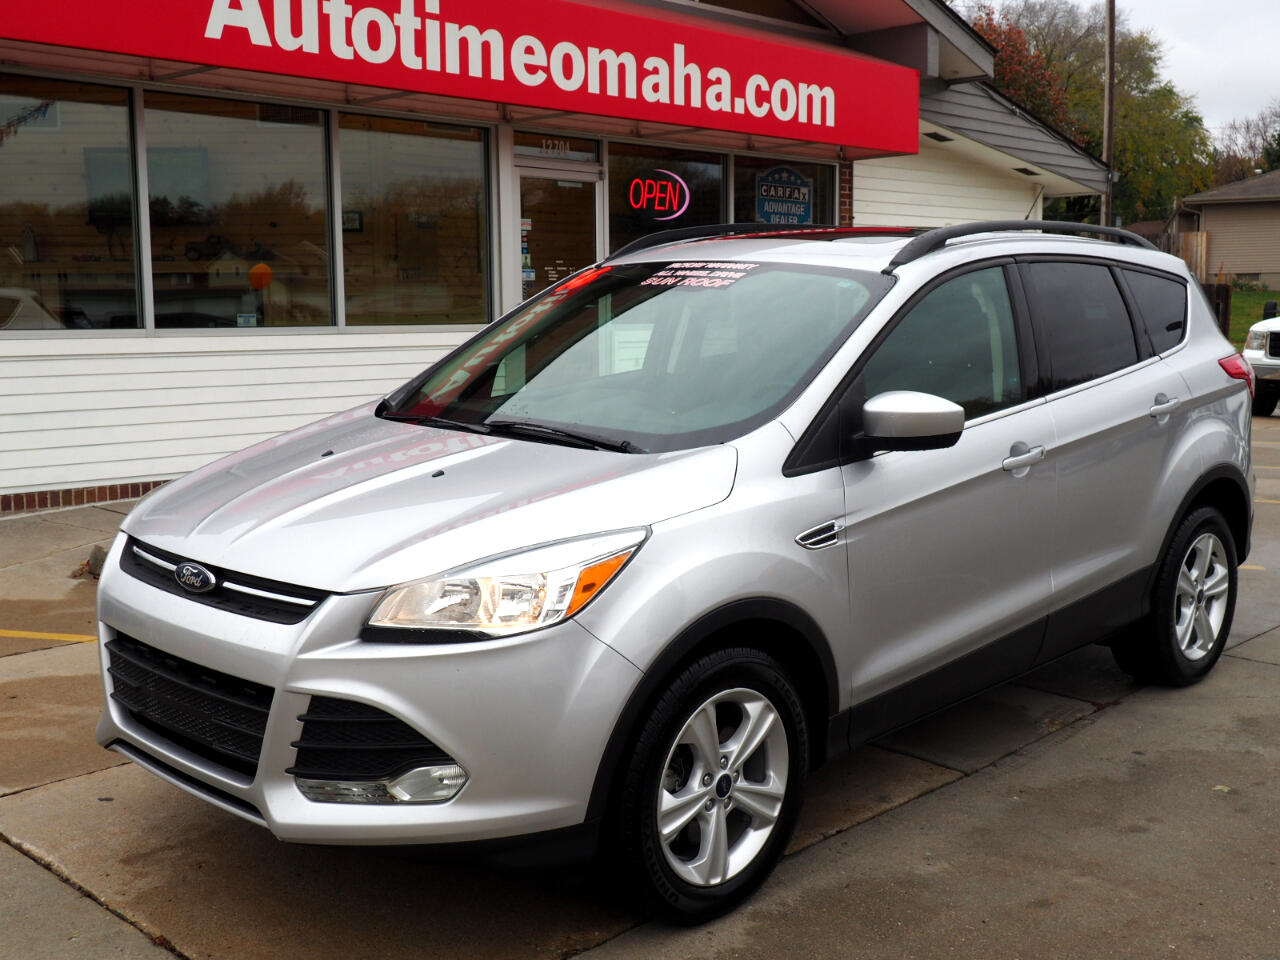 2016 Ford Escape SE 4 Wheel Drive With Sunroof